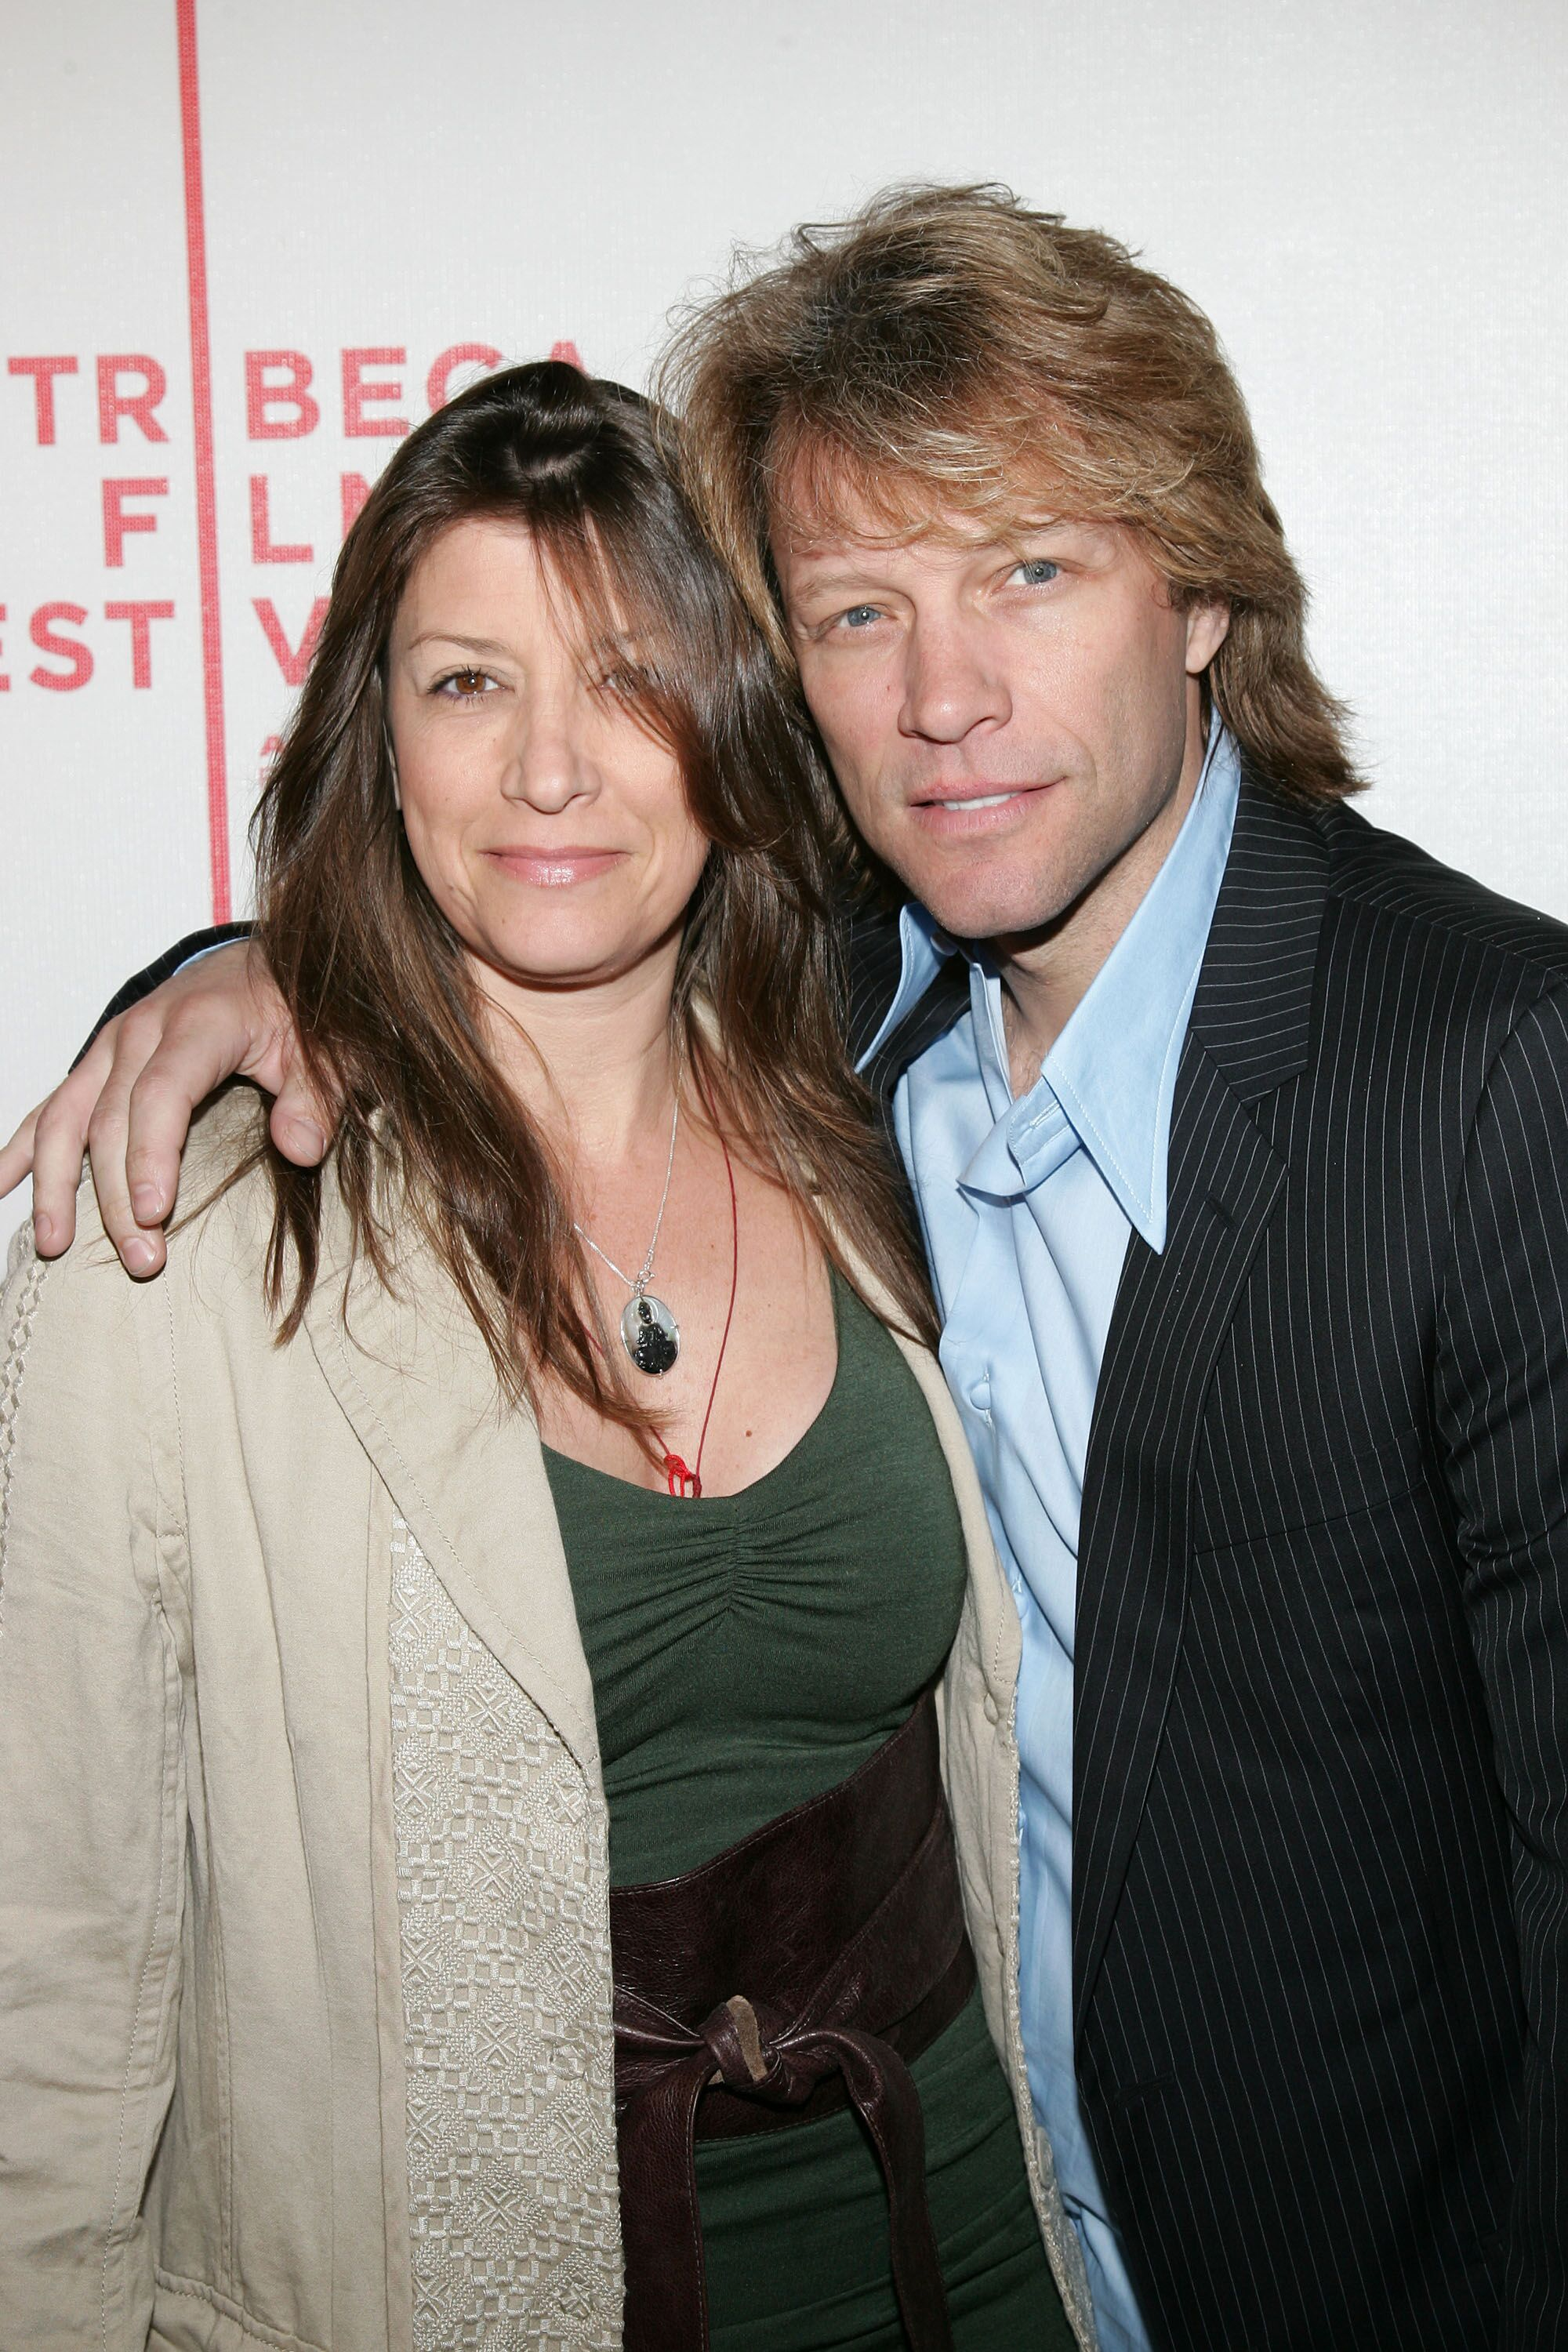 Bon Jovi and wife Dorothea Hurley at the 2007 Tribeca Film Festival. | Source: Getty Images